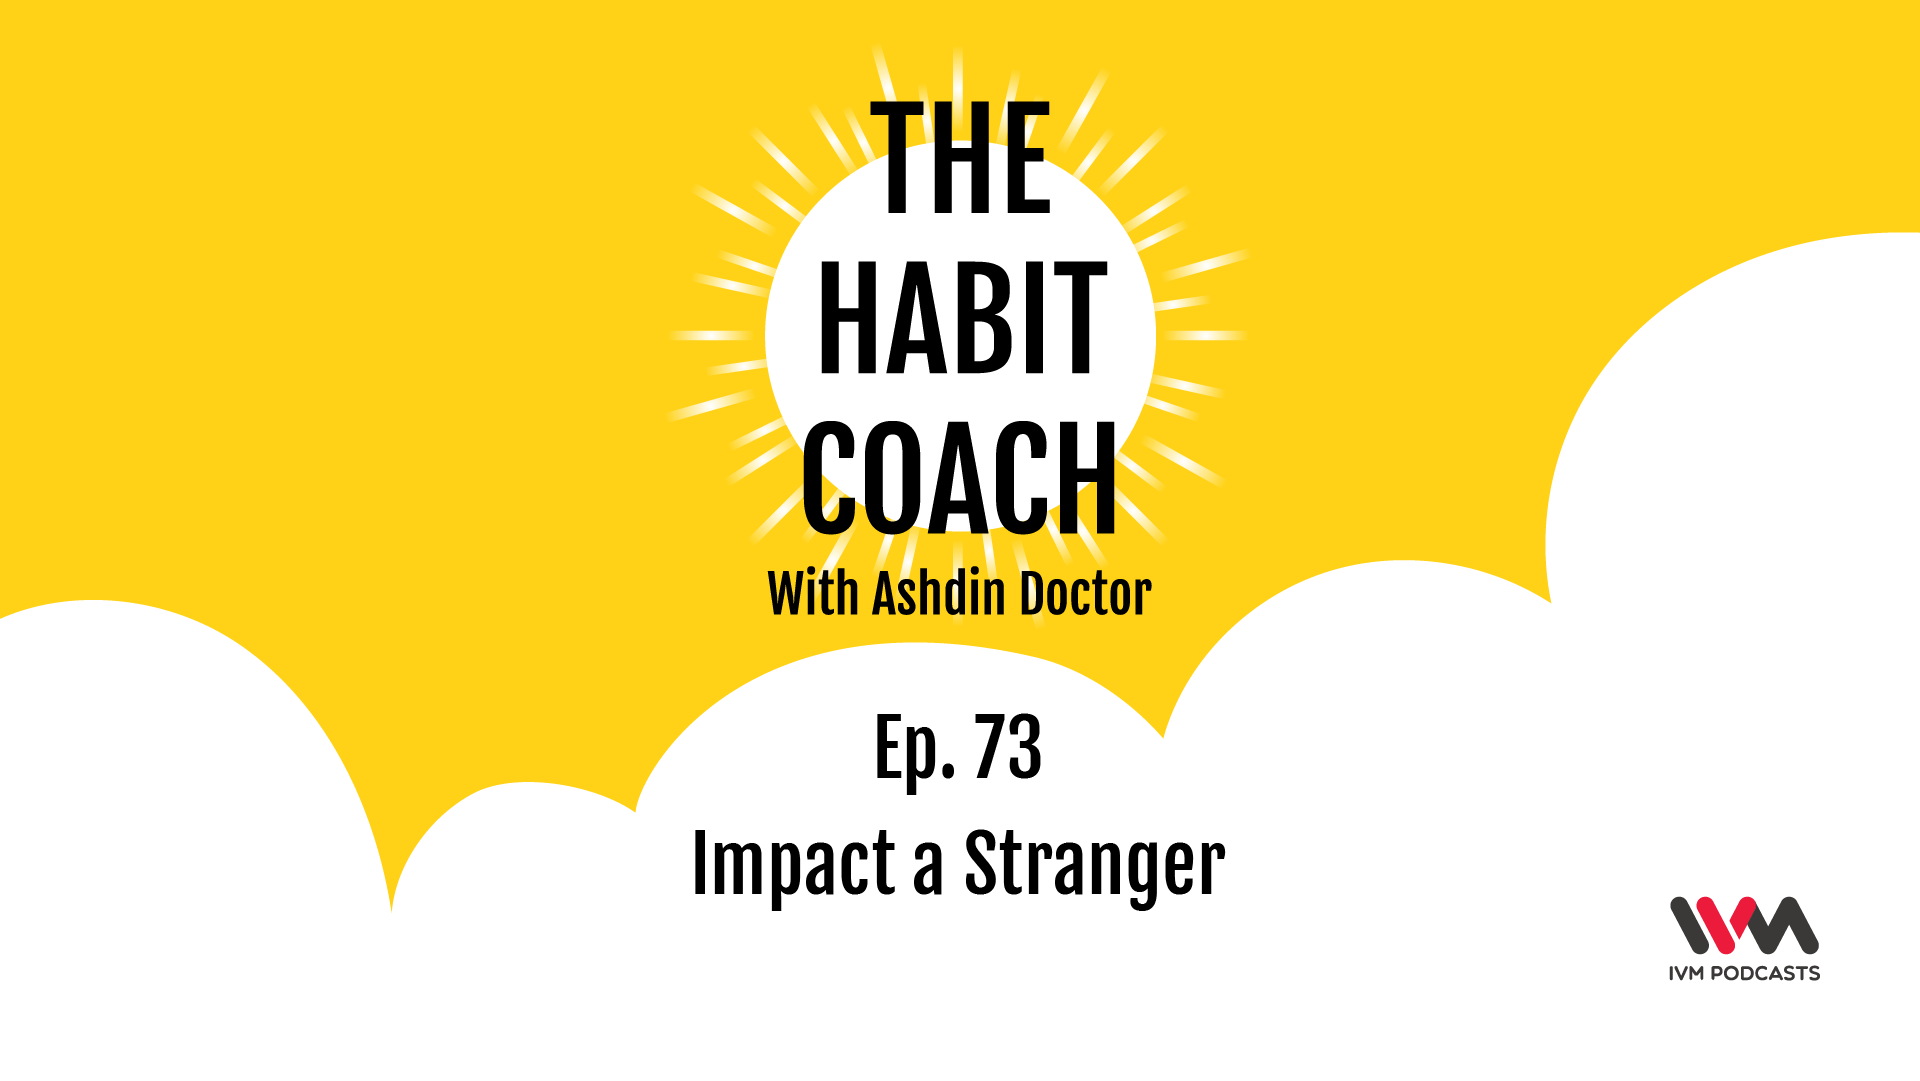 TheHabitCoachEpisode73.png